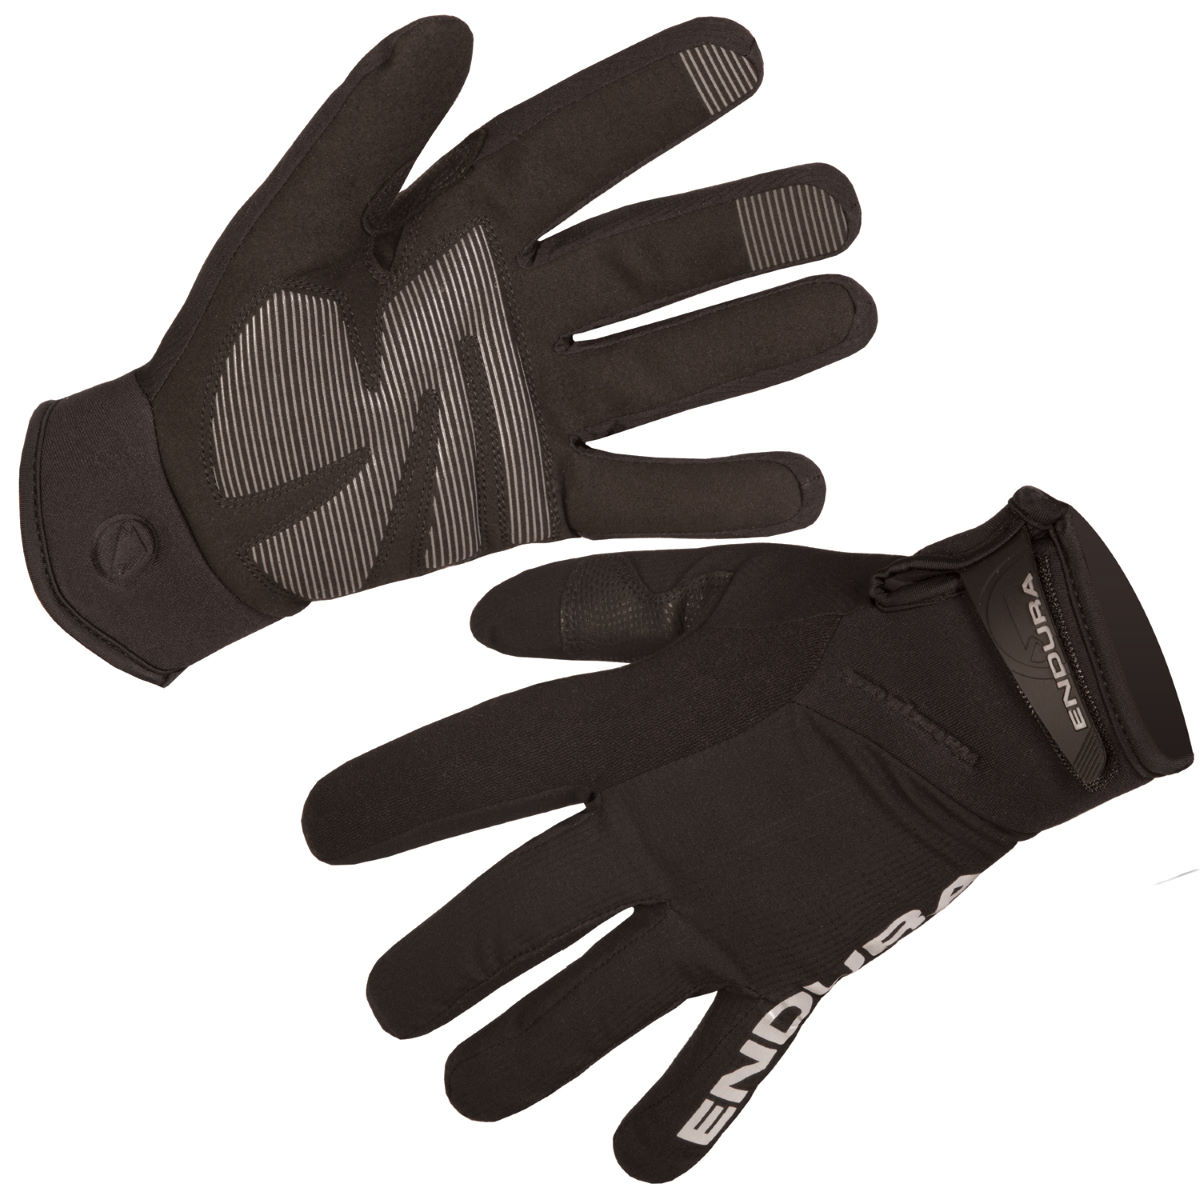 Endura Strike II Gloves - Extra Large Black | Winter Gloves